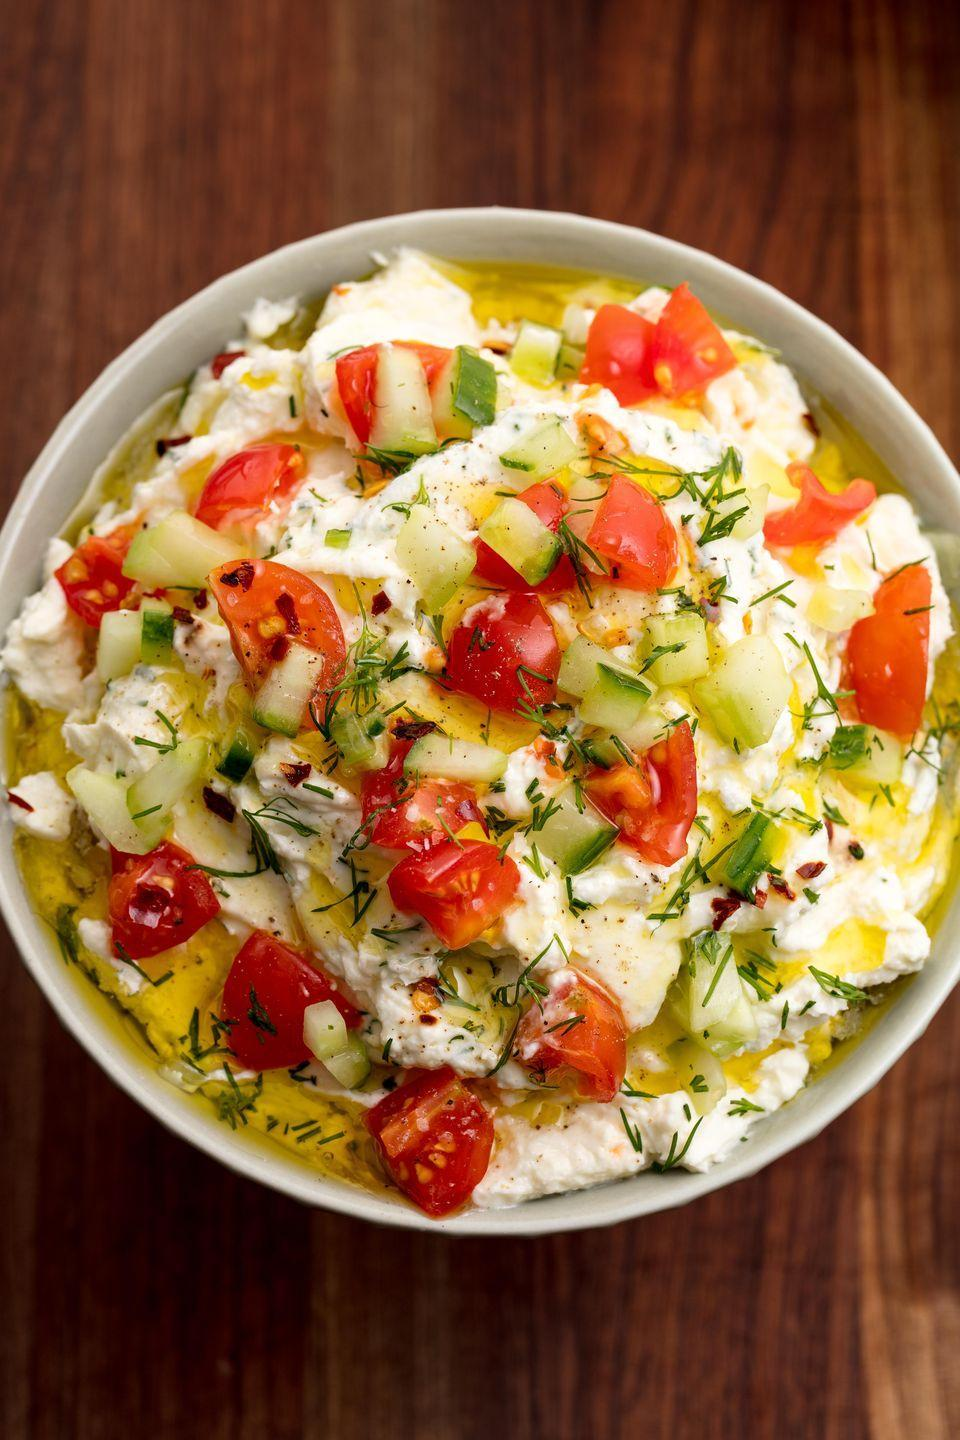 """<p>We love a dip, and this feta dip is seriously tasty.</p><p>Get the <a href=""""https://www.delish.com/uk/cooking/recipes/a32386044/greek-feta-dip-recipe/"""" rel=""""nofollow noopener"""" target=""""_blank"""" data-ylk=""""slk:Whipped Feta Dip"""" class=""""link rapid-noclick-resp"""">Whipped Feta Dip</a> recipe. </p>"""